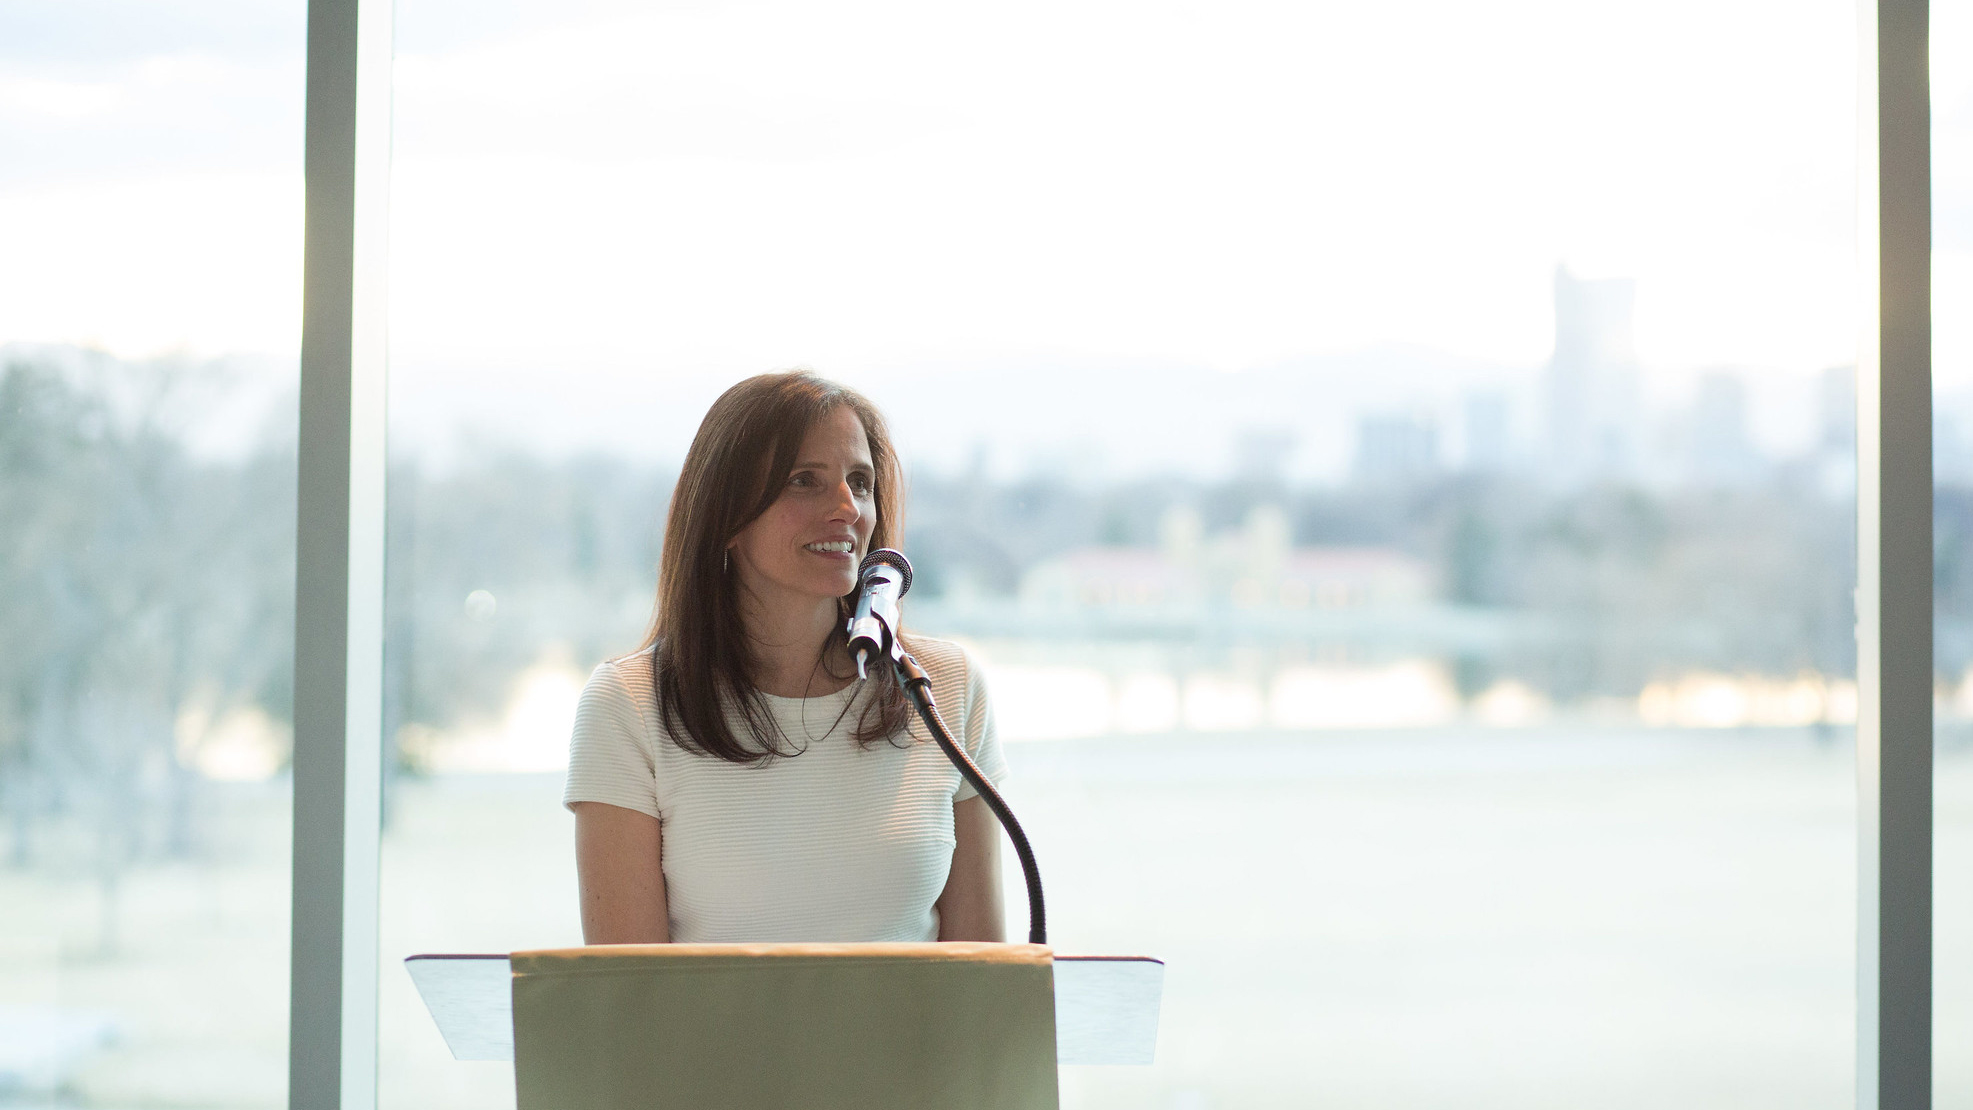 Alumna host speaking at an event